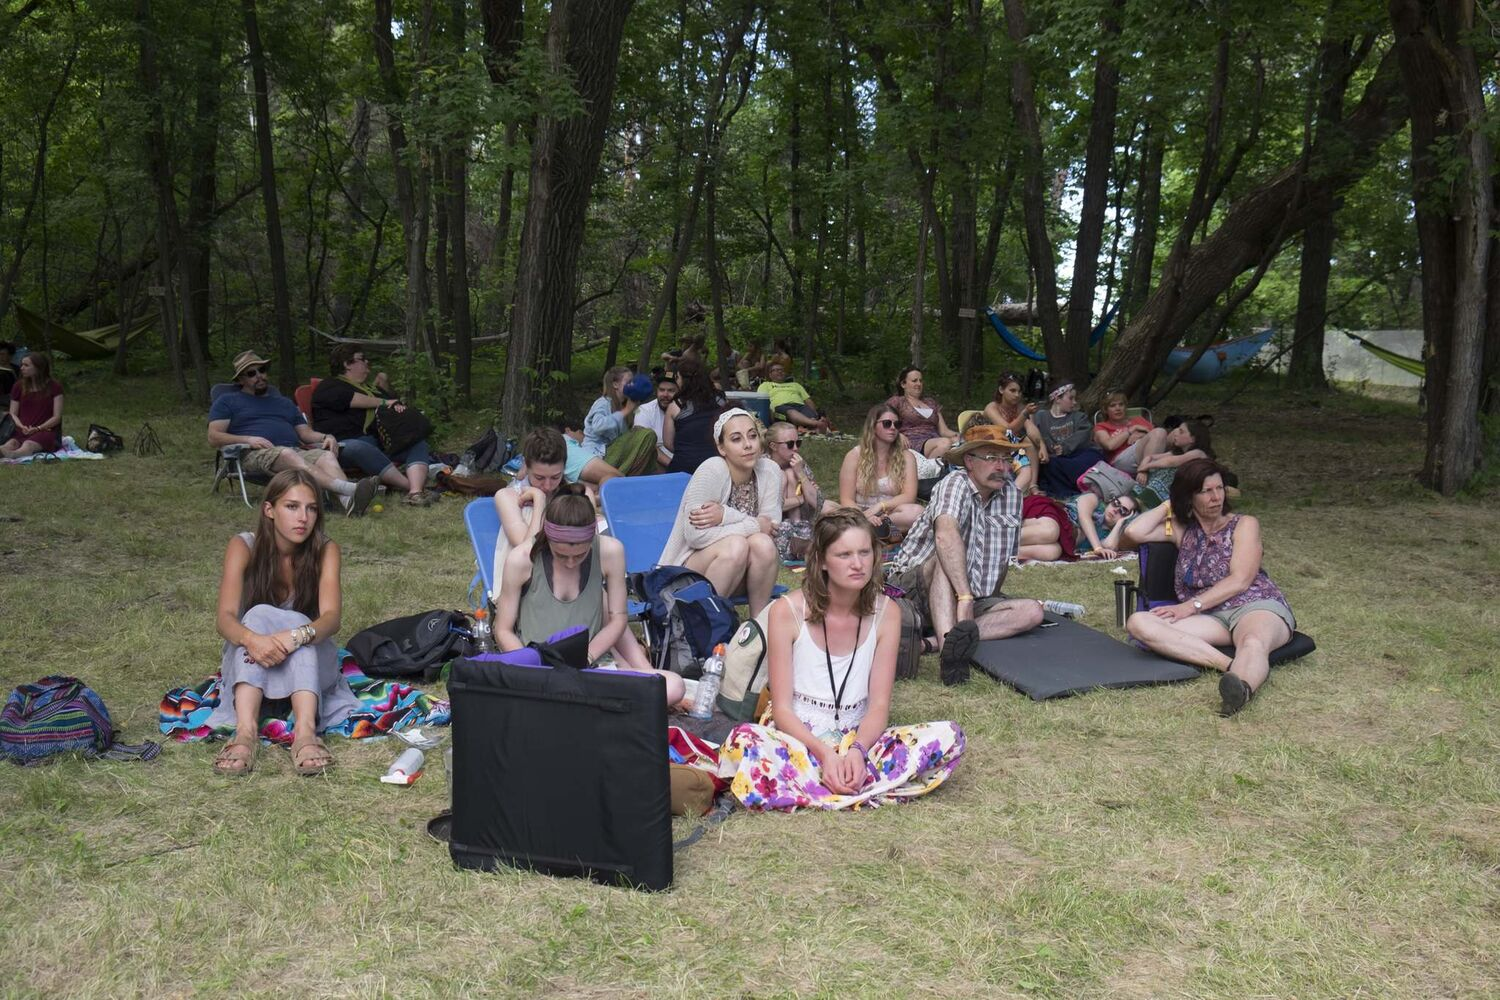 ZACHARY PRONG / WINNIPEG FREE PRESS</p></p><p>People enjoy live music at one of the many workshops offered at the Folk Festival, Friday.</p>